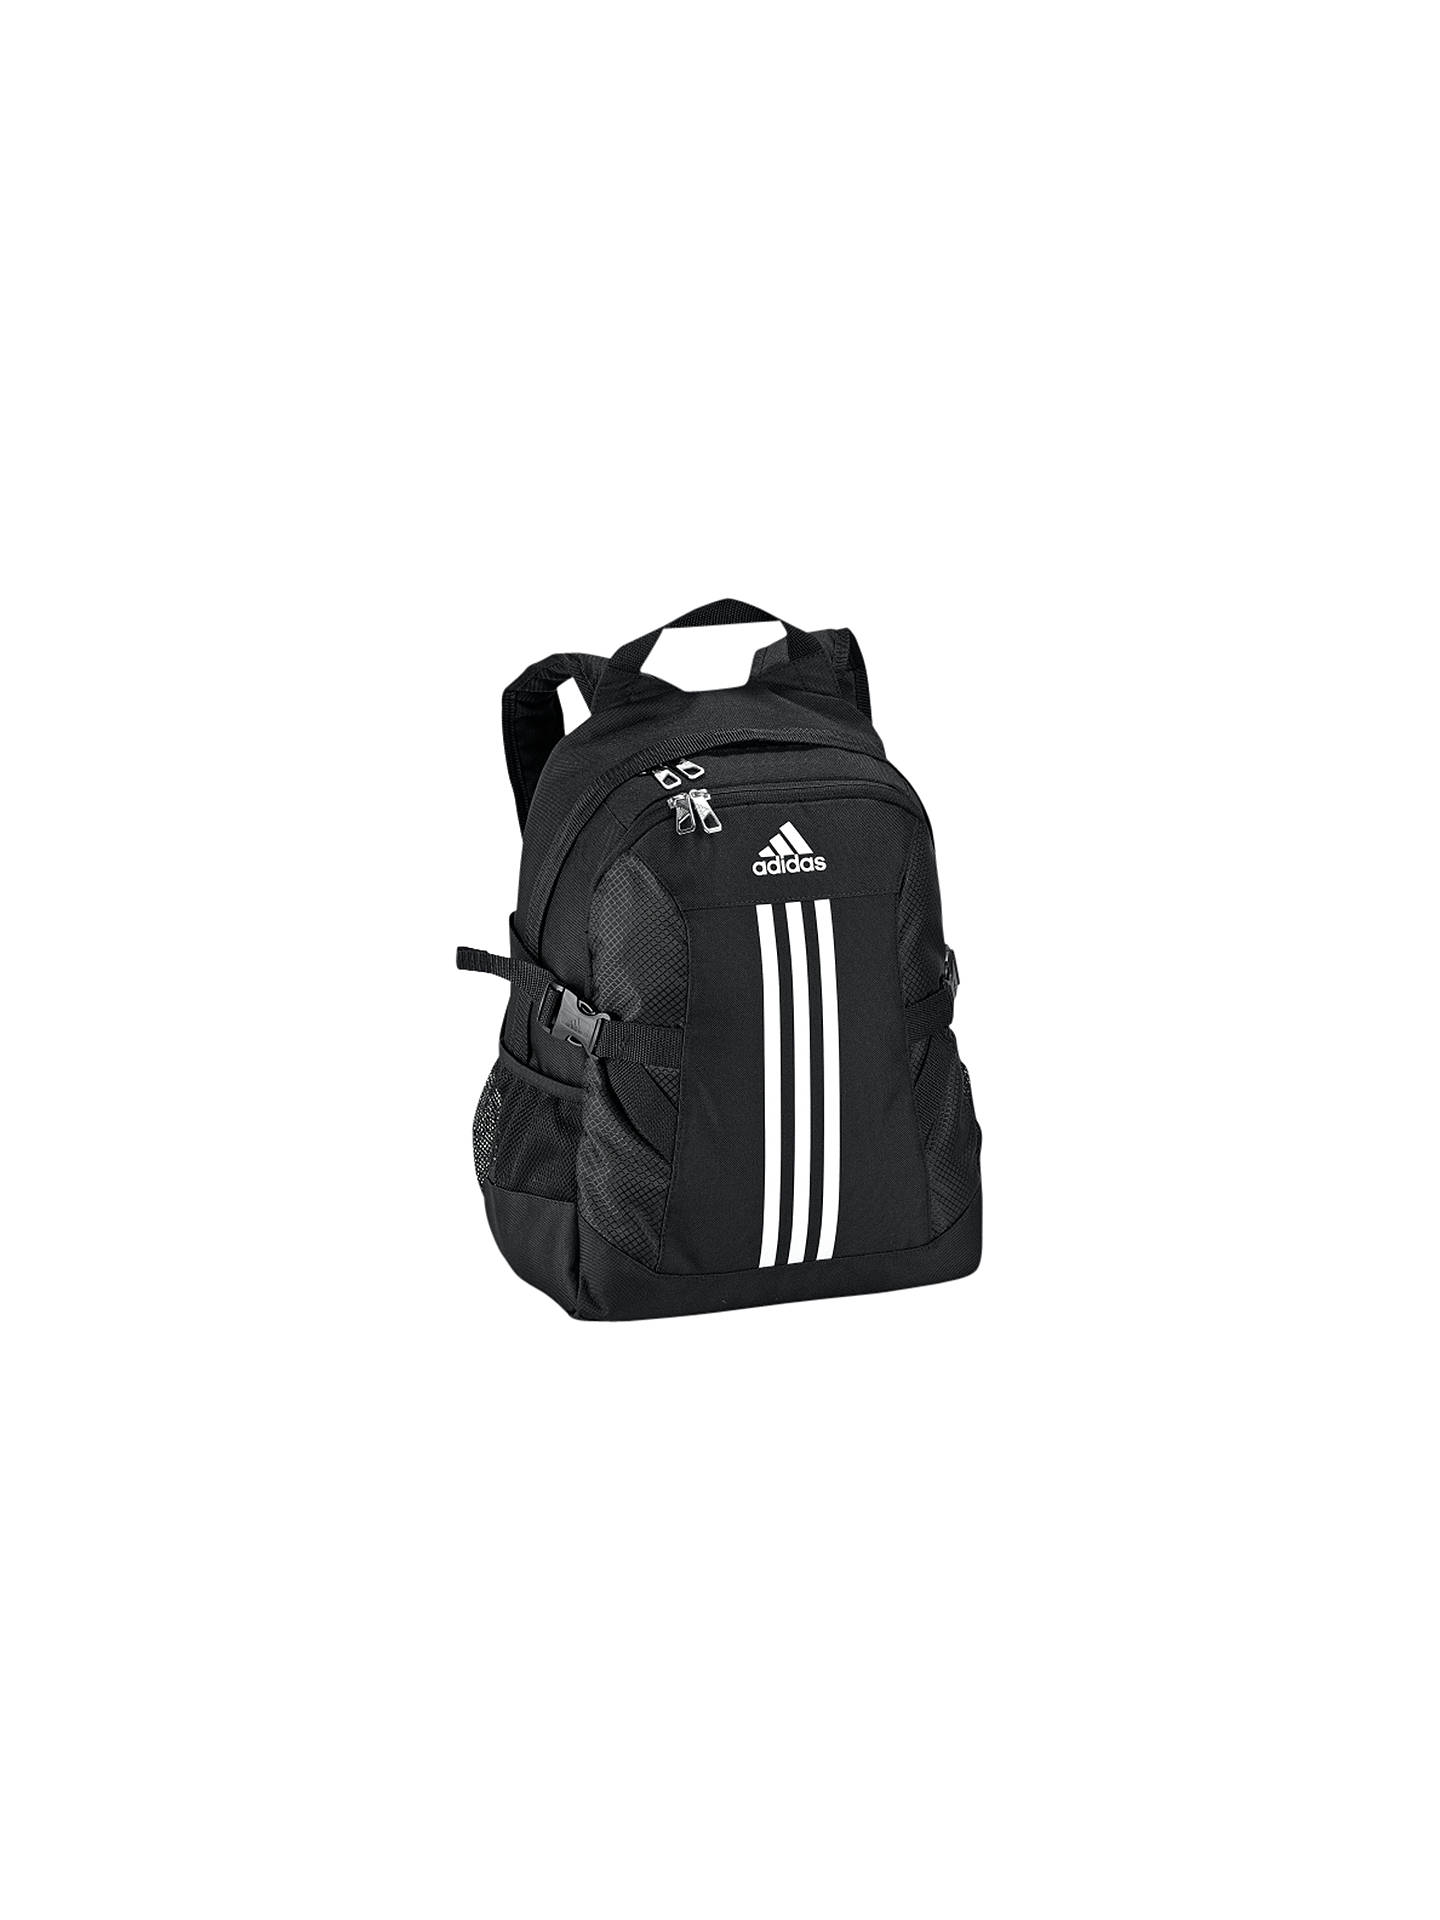 260dbc01f4a0 BuyAdidas 3 Stripes Backpack